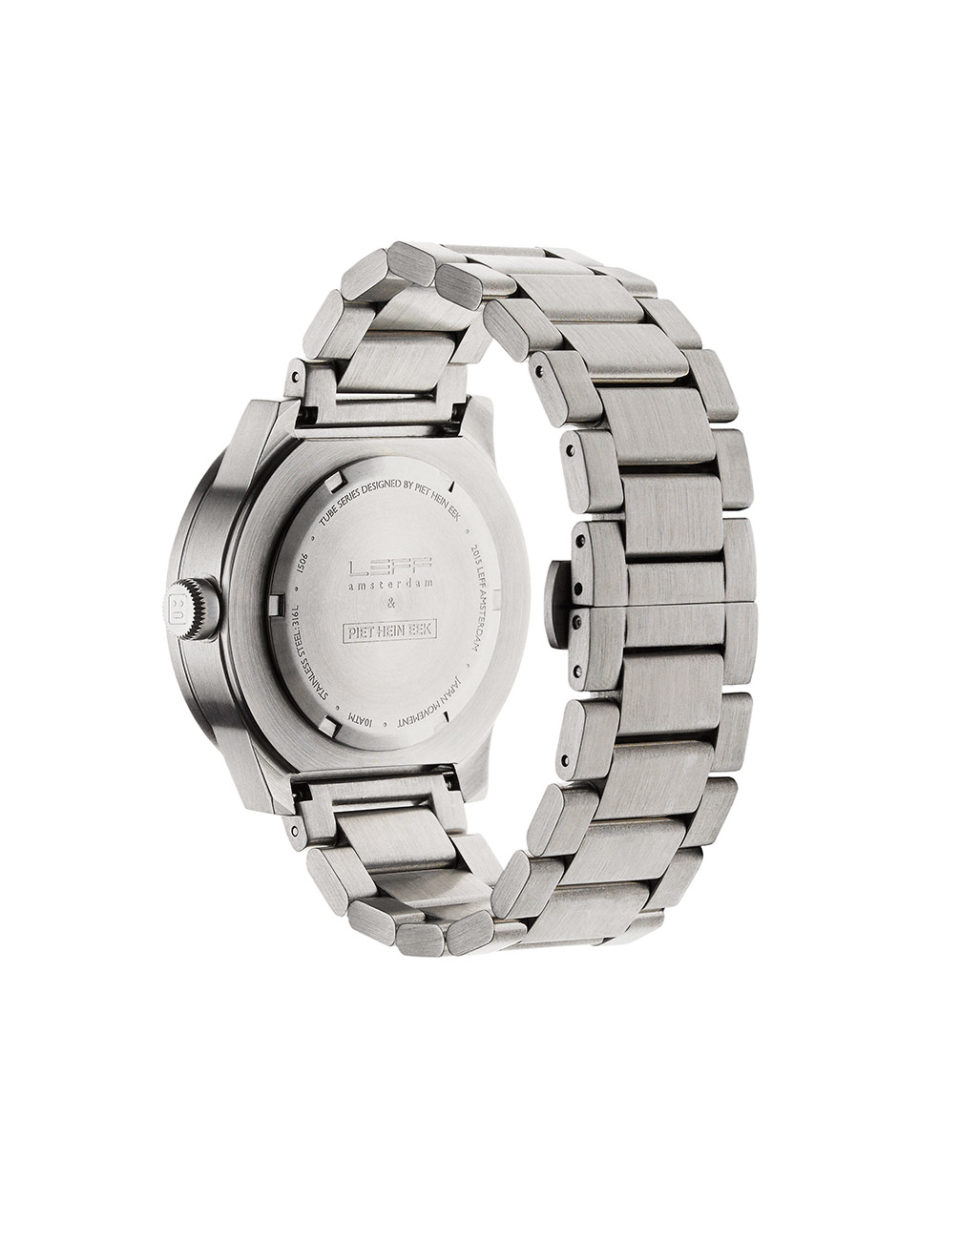 Leff Amsterdam Tube Watch S42, Stainless Steel-29319